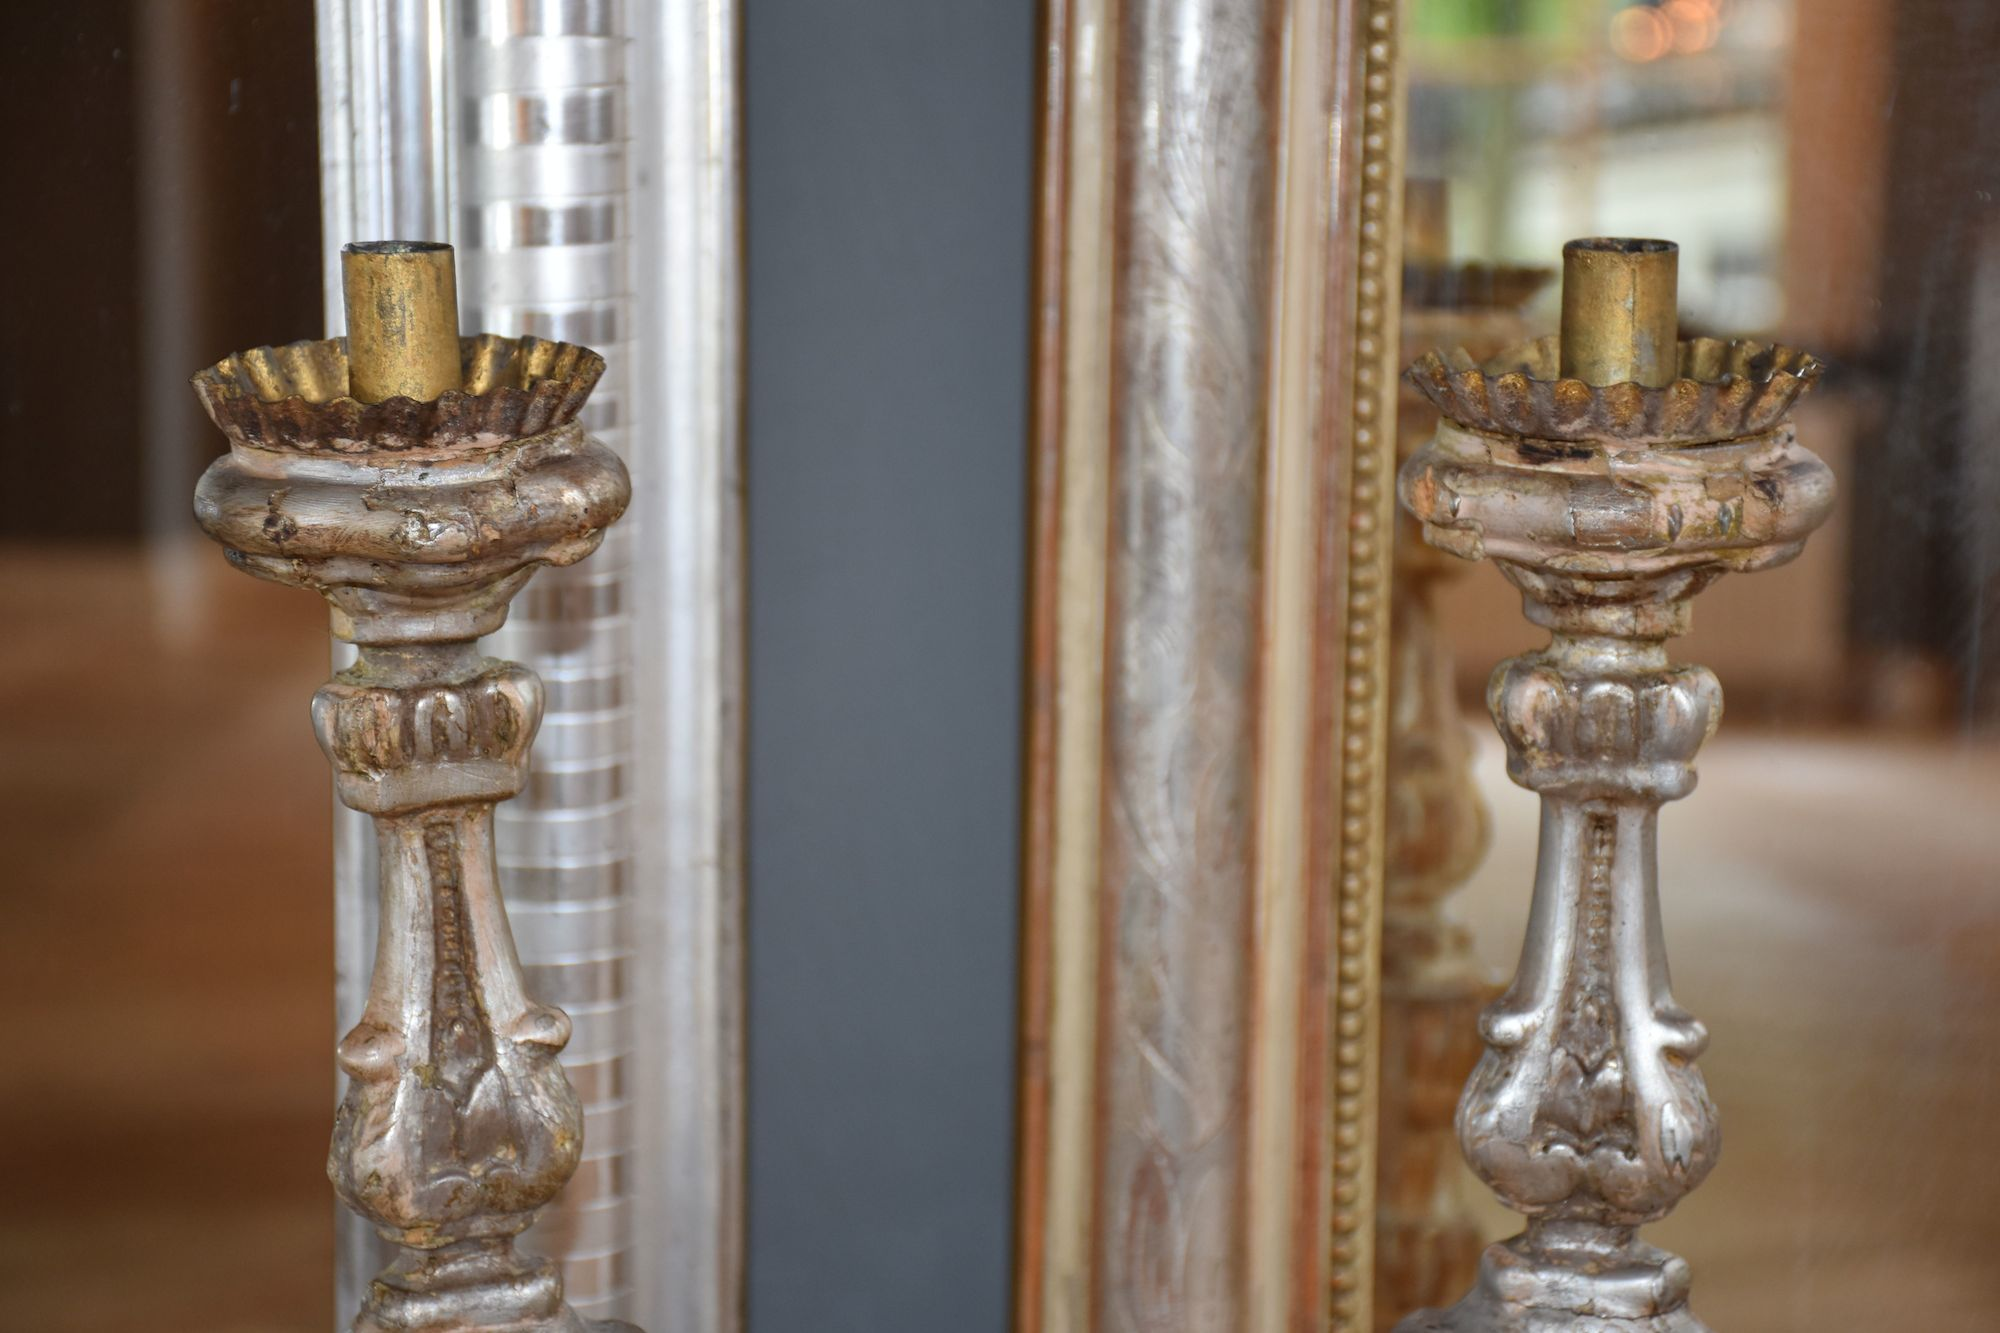 A pair of 19th century Italian candlesticks/pricket sticks